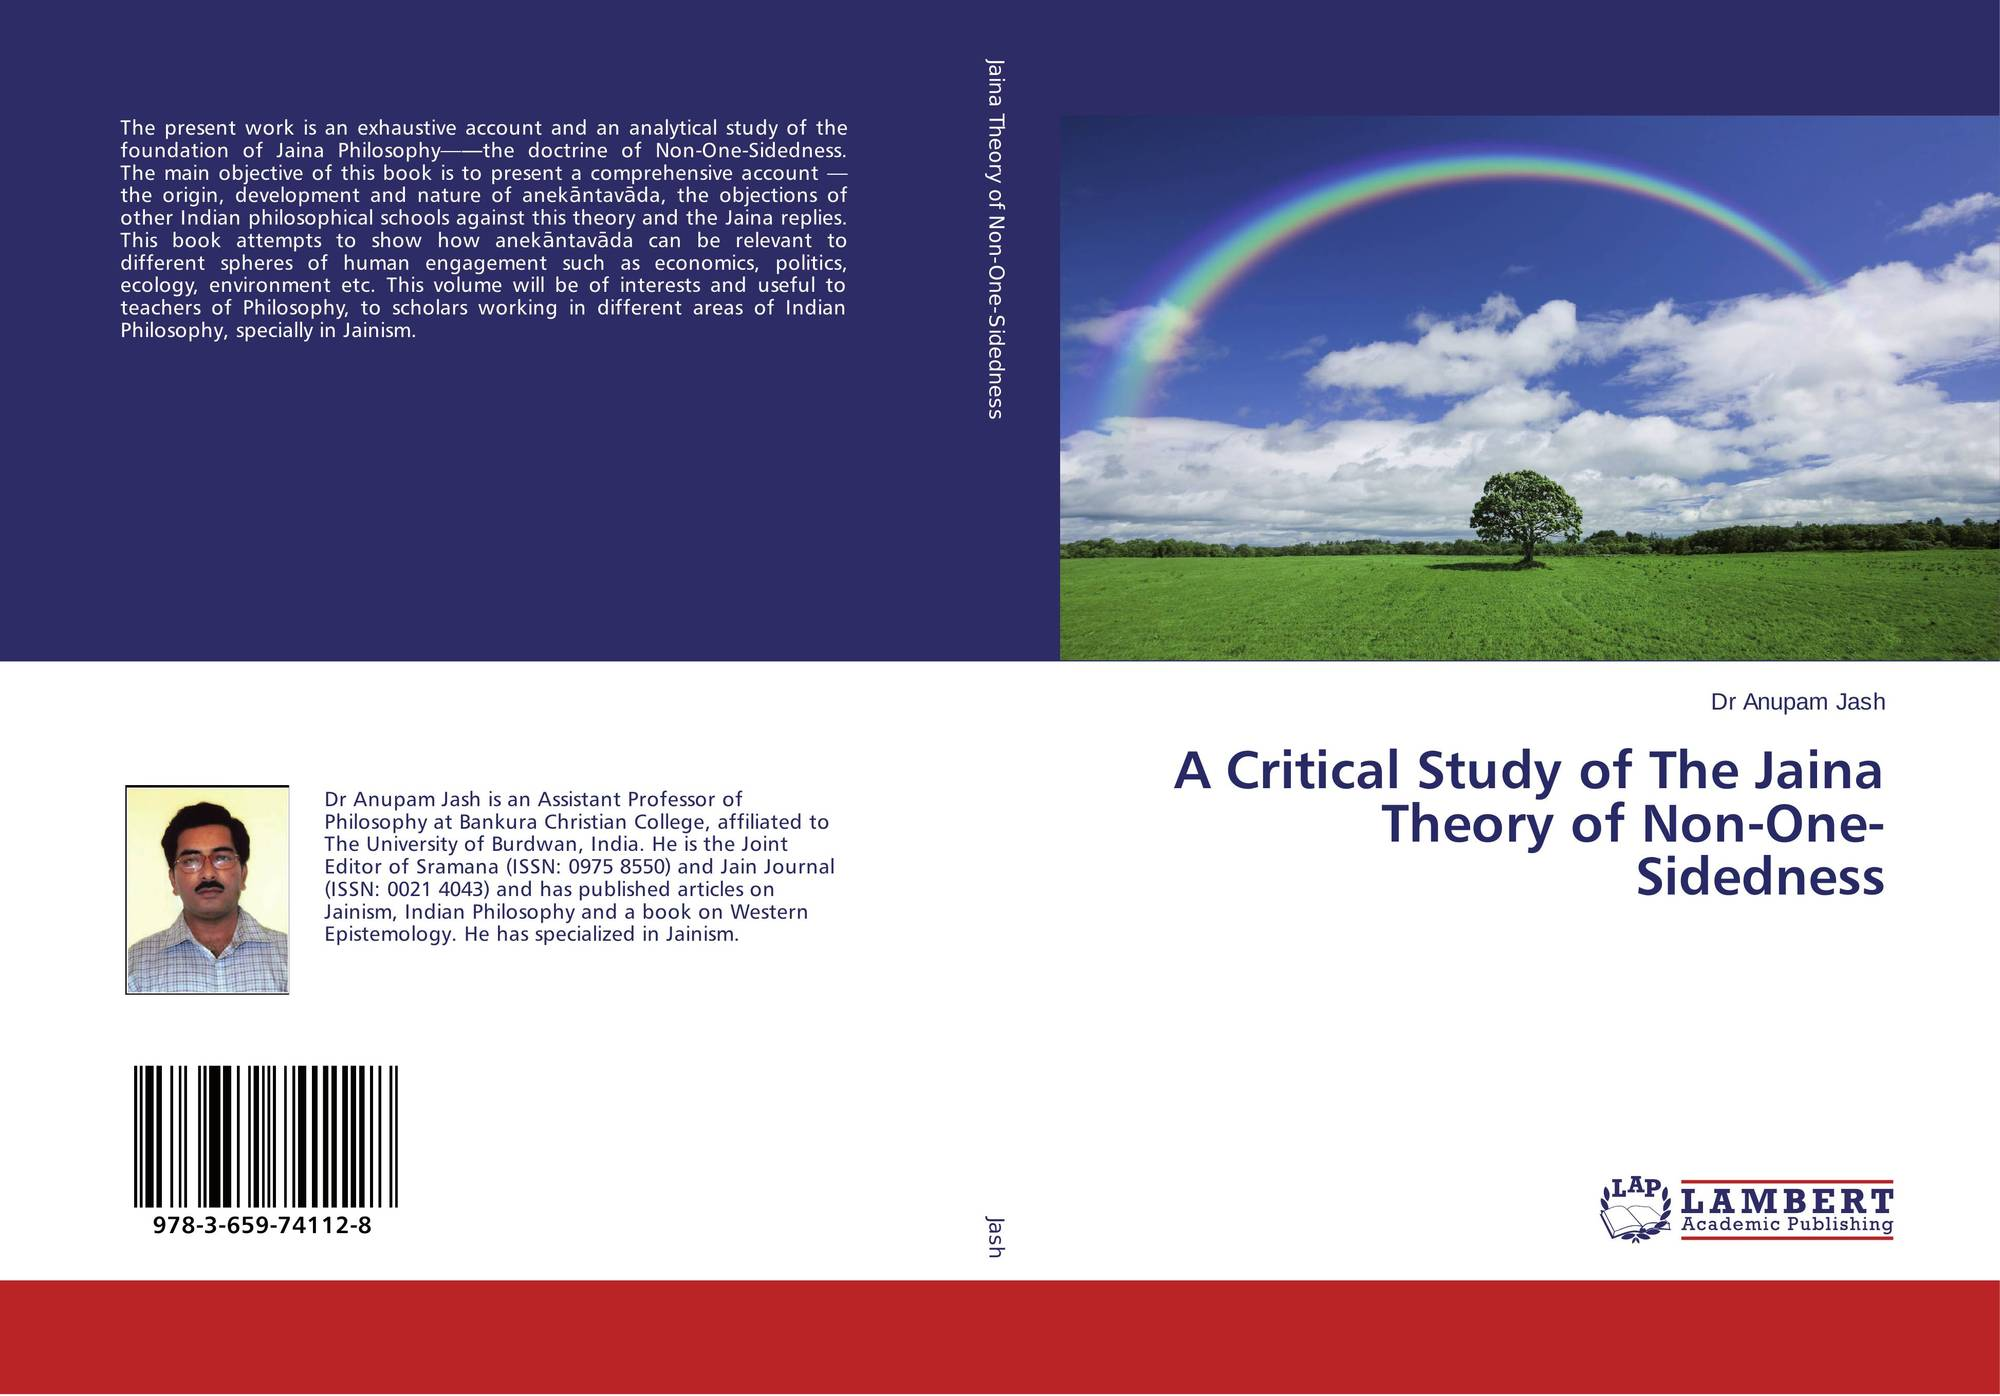 an analysis of the validity of the theory indicating the presence of a singular general motor abilit Scientific institute for quality of health care, nijmegen, the netherlands  margo j van hartingsveldt at department of rehabilitation, occupational therapy 898, radboud university nijmegen medical centre, po box 9101, 6500 hb nijmegen, the netherlands e-mail: mvanhartingsveldt@revalumcnnl.